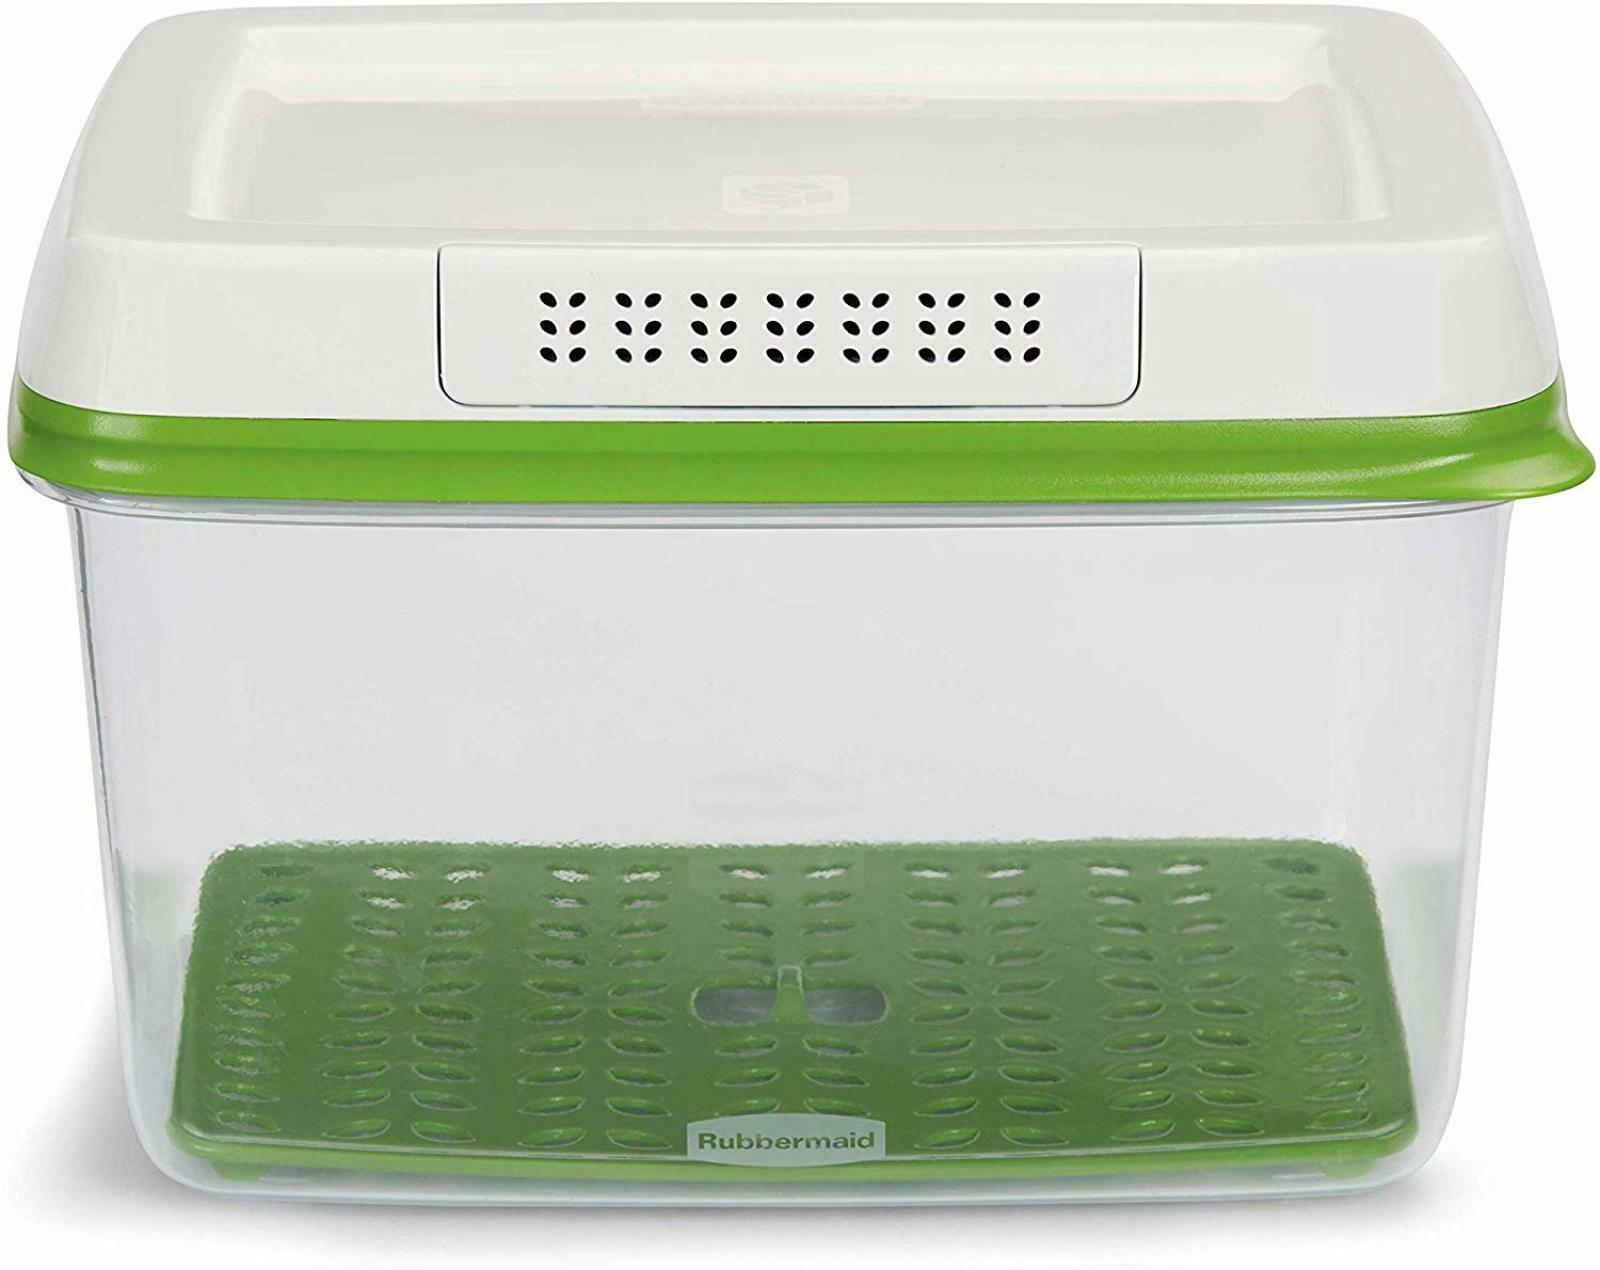 Rubbermaid FreshWorks Produce Saver Food Storage Container Large 17.3 Cup Green 1